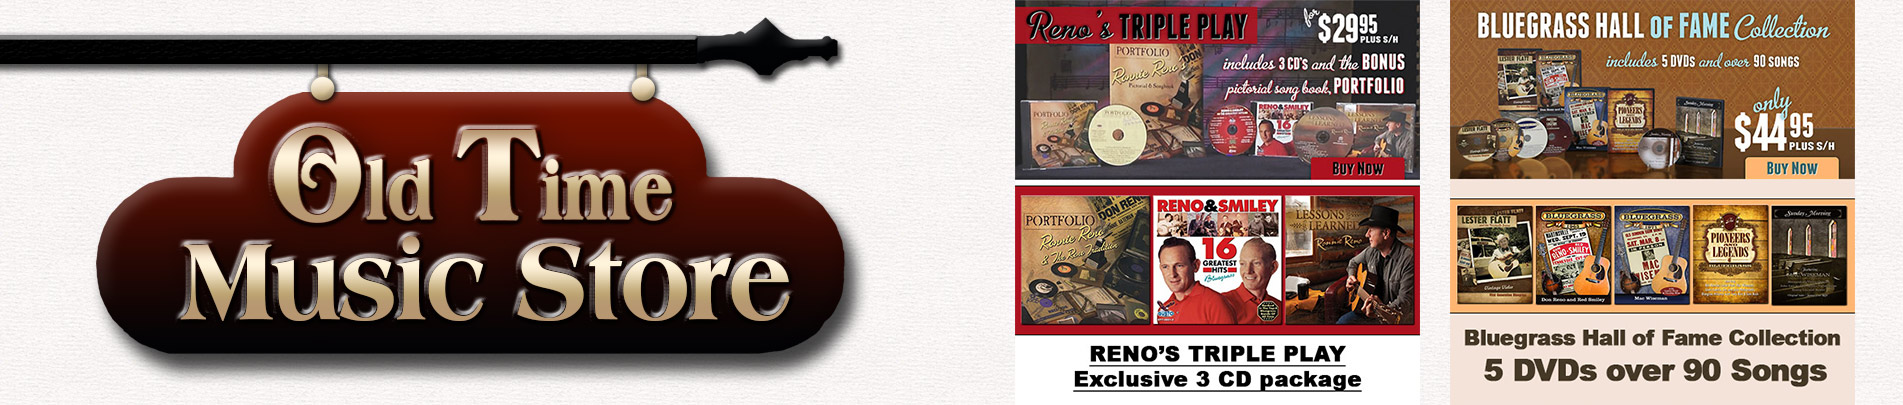 ronnie-reno-front-page-store-banner